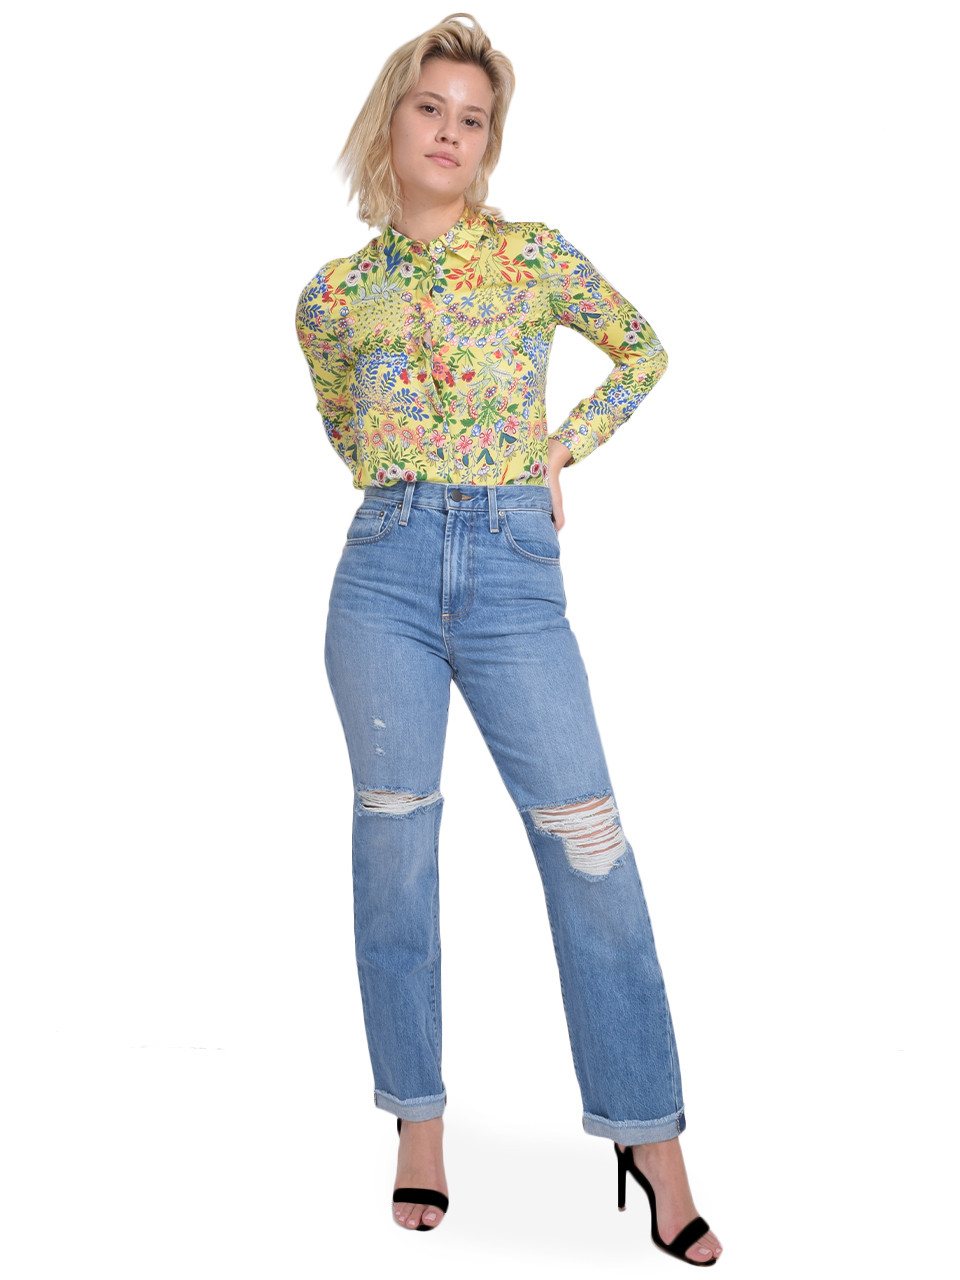 ALICE + OLIVIA Amazing High Rise Boyfriend Jean in Not Yours Full Outfit